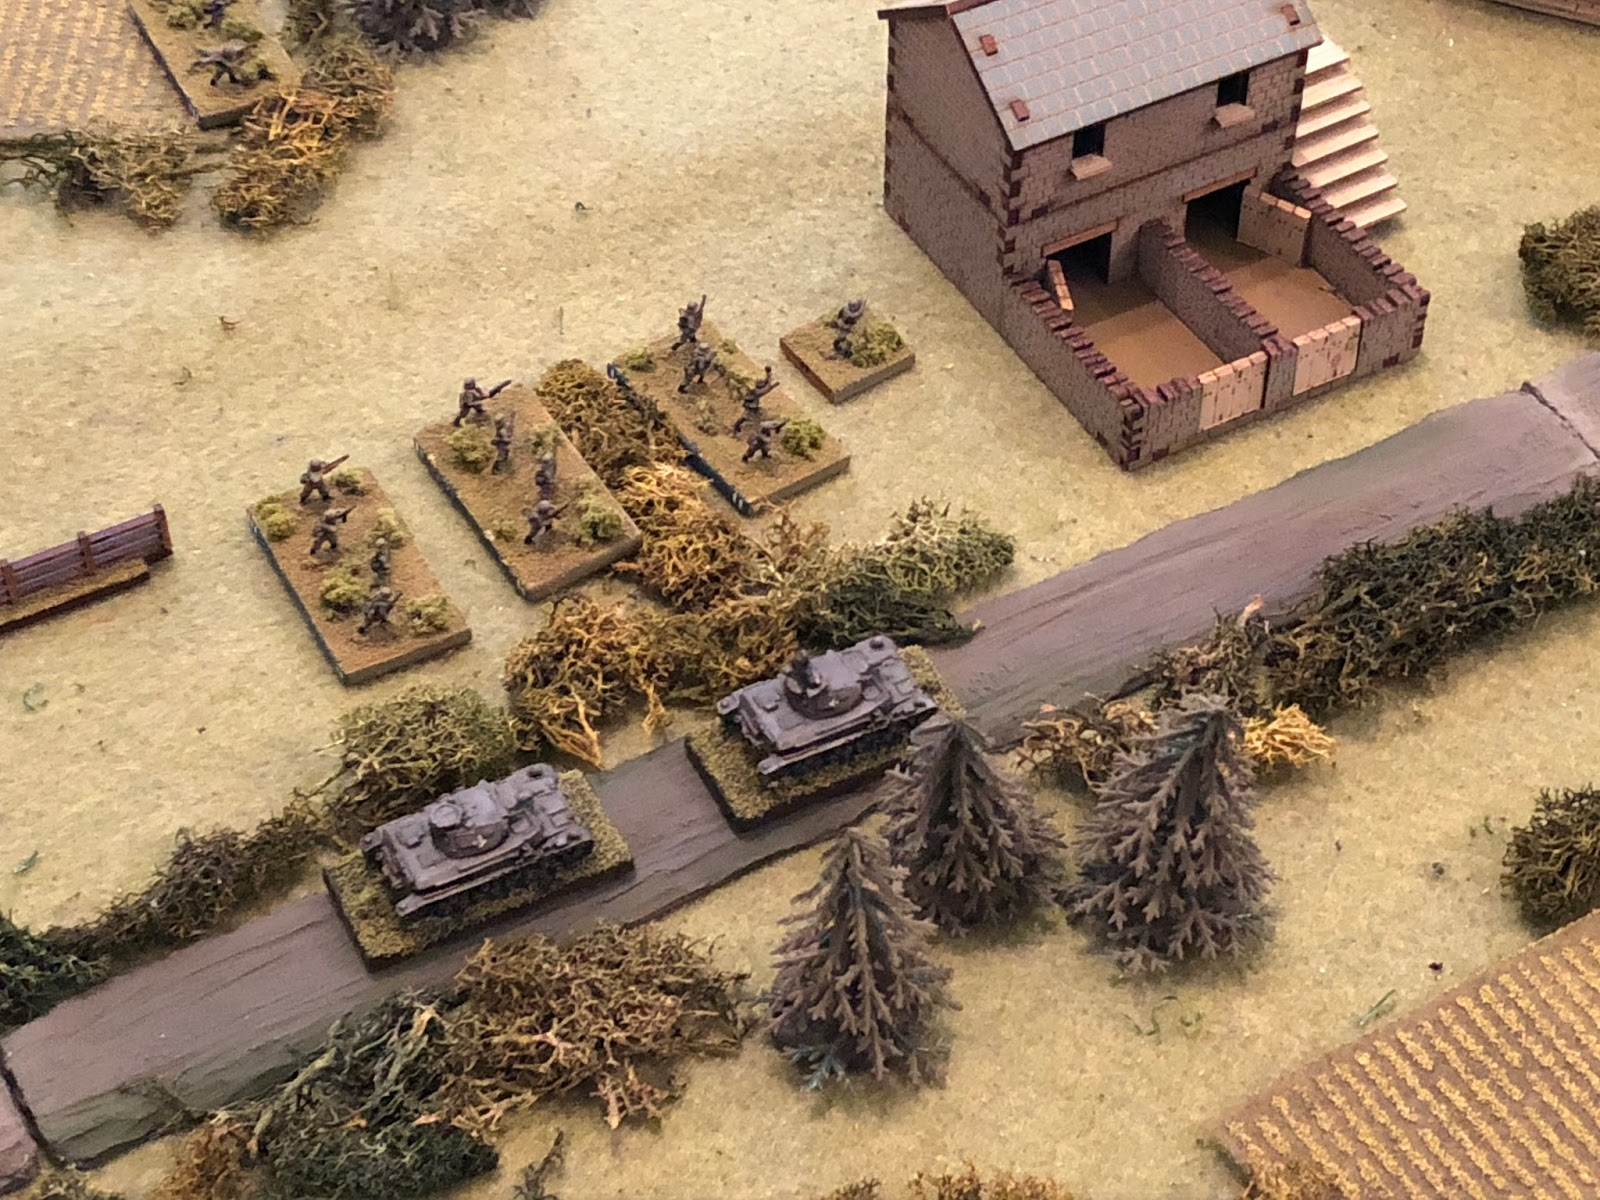 At this point the German commander can't take it anymore and kicks SSgt Janke and SSgt Mangold in their asses, screaming at them to get into the fight!  They quickly stub out their cigarettes and head off to their waiting men and vehicles.  *I belatedly make the decision to pull 3rd Platoon and 2nd Tank Platoon off of Blinds and get their cards into the deck so I might get some use out of them.  Something else is, I never did put the Kampfgruppe Commander on the table!  I was wracked with indecision: do I put him in the south to help the two beat up infantry platoons?  Do I put him in the west with Lt Loeb's two panzers?  Do I put him in the centre to get these two platoons moving on the objective?  I couldn't make up my mind and ultimately got overtaken by events.  Now that's some serious friction and fog of war! ;)